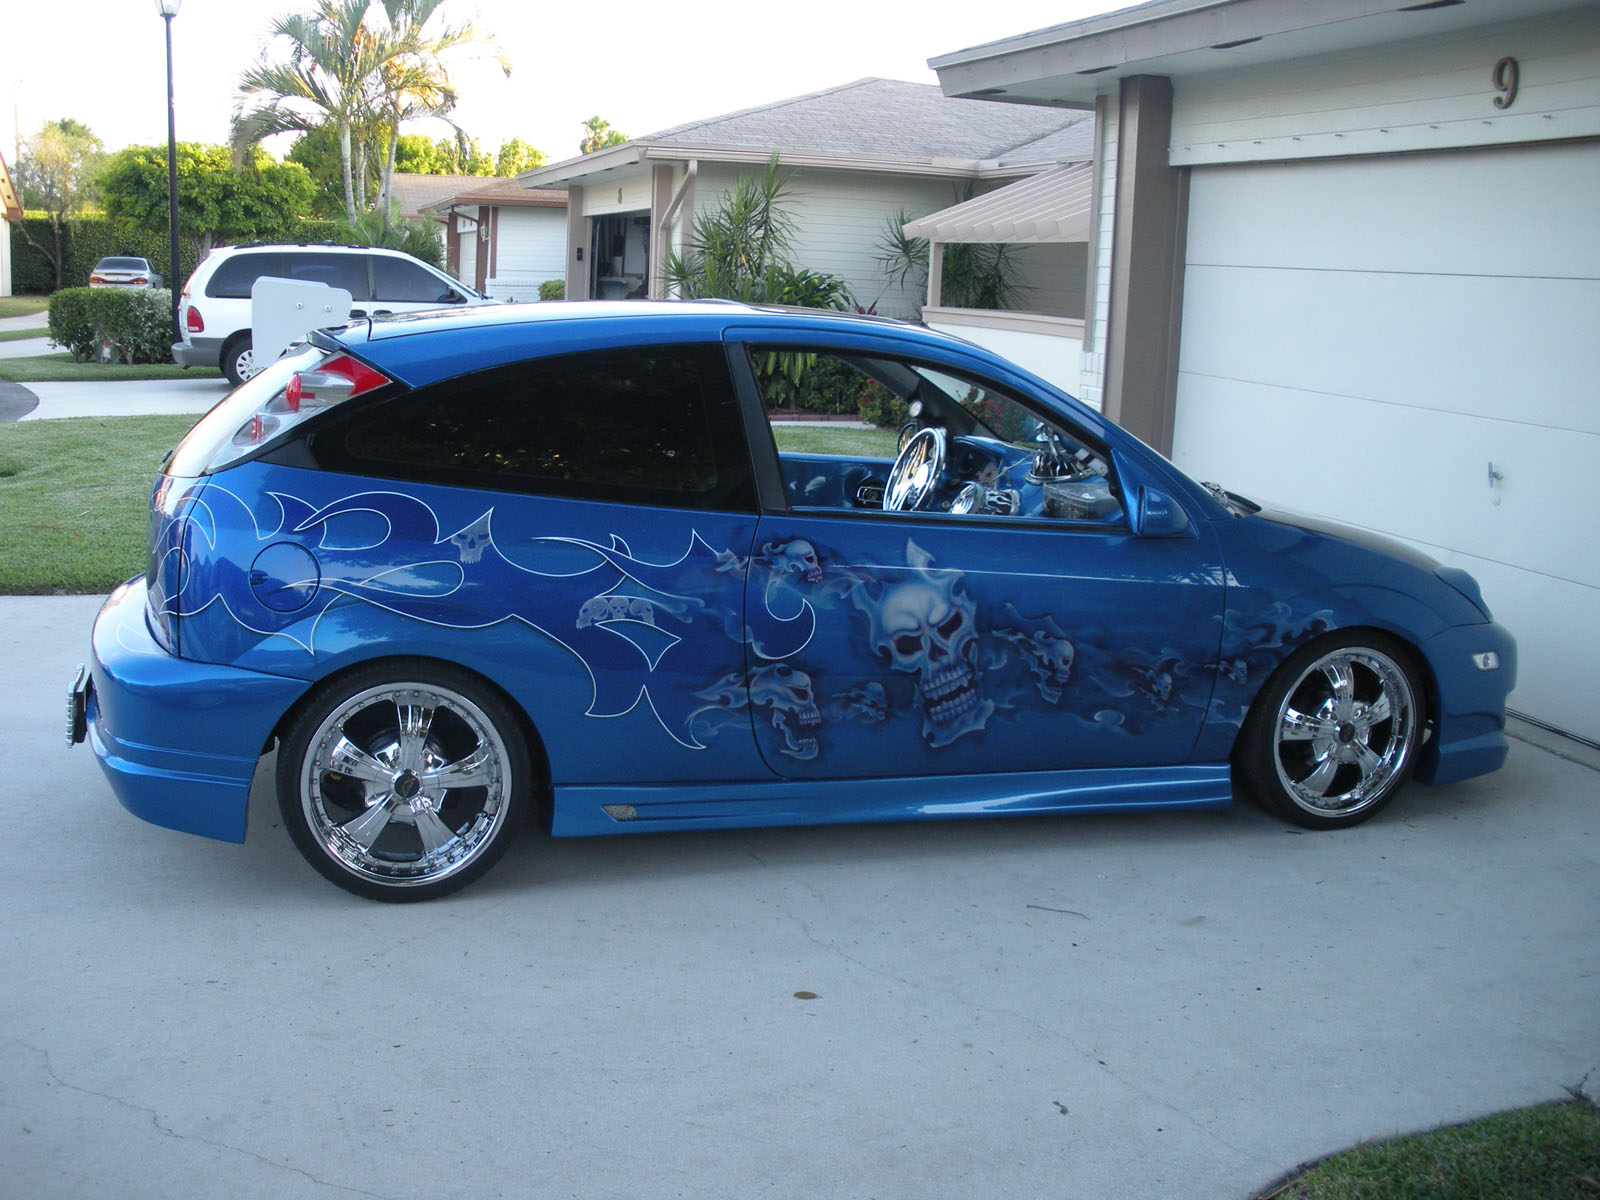 2001 ford focus zx3 hatchback for sale florida. Black Bedroom Furniture Sets. Home Design Ideas